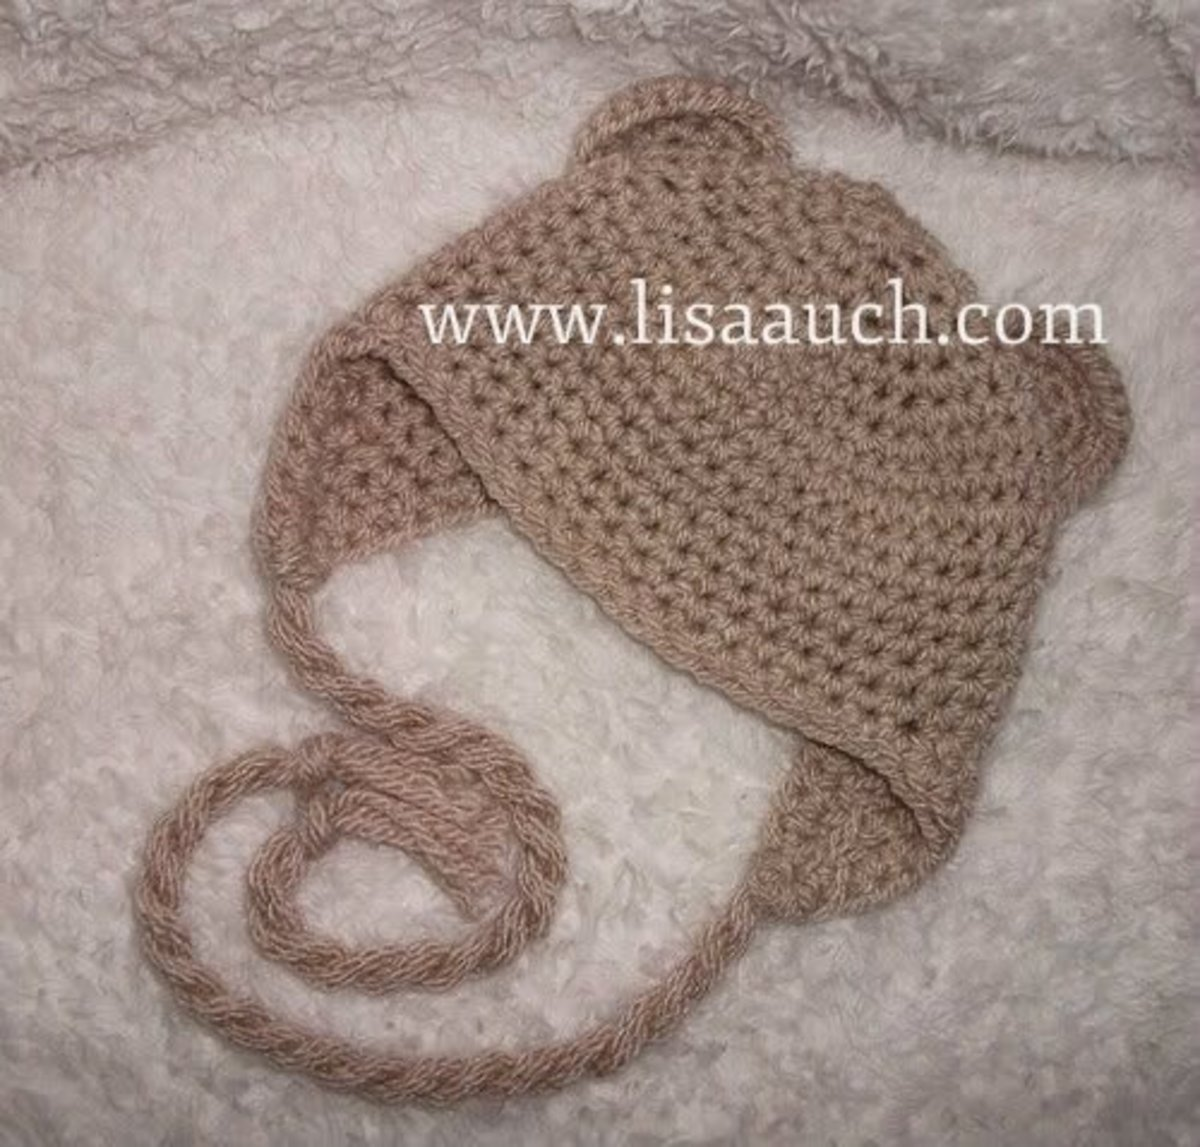 Easy Crochet Animal Hat Patterns : FREE Crochet Baby Hat Patterns Ideal for Beginners